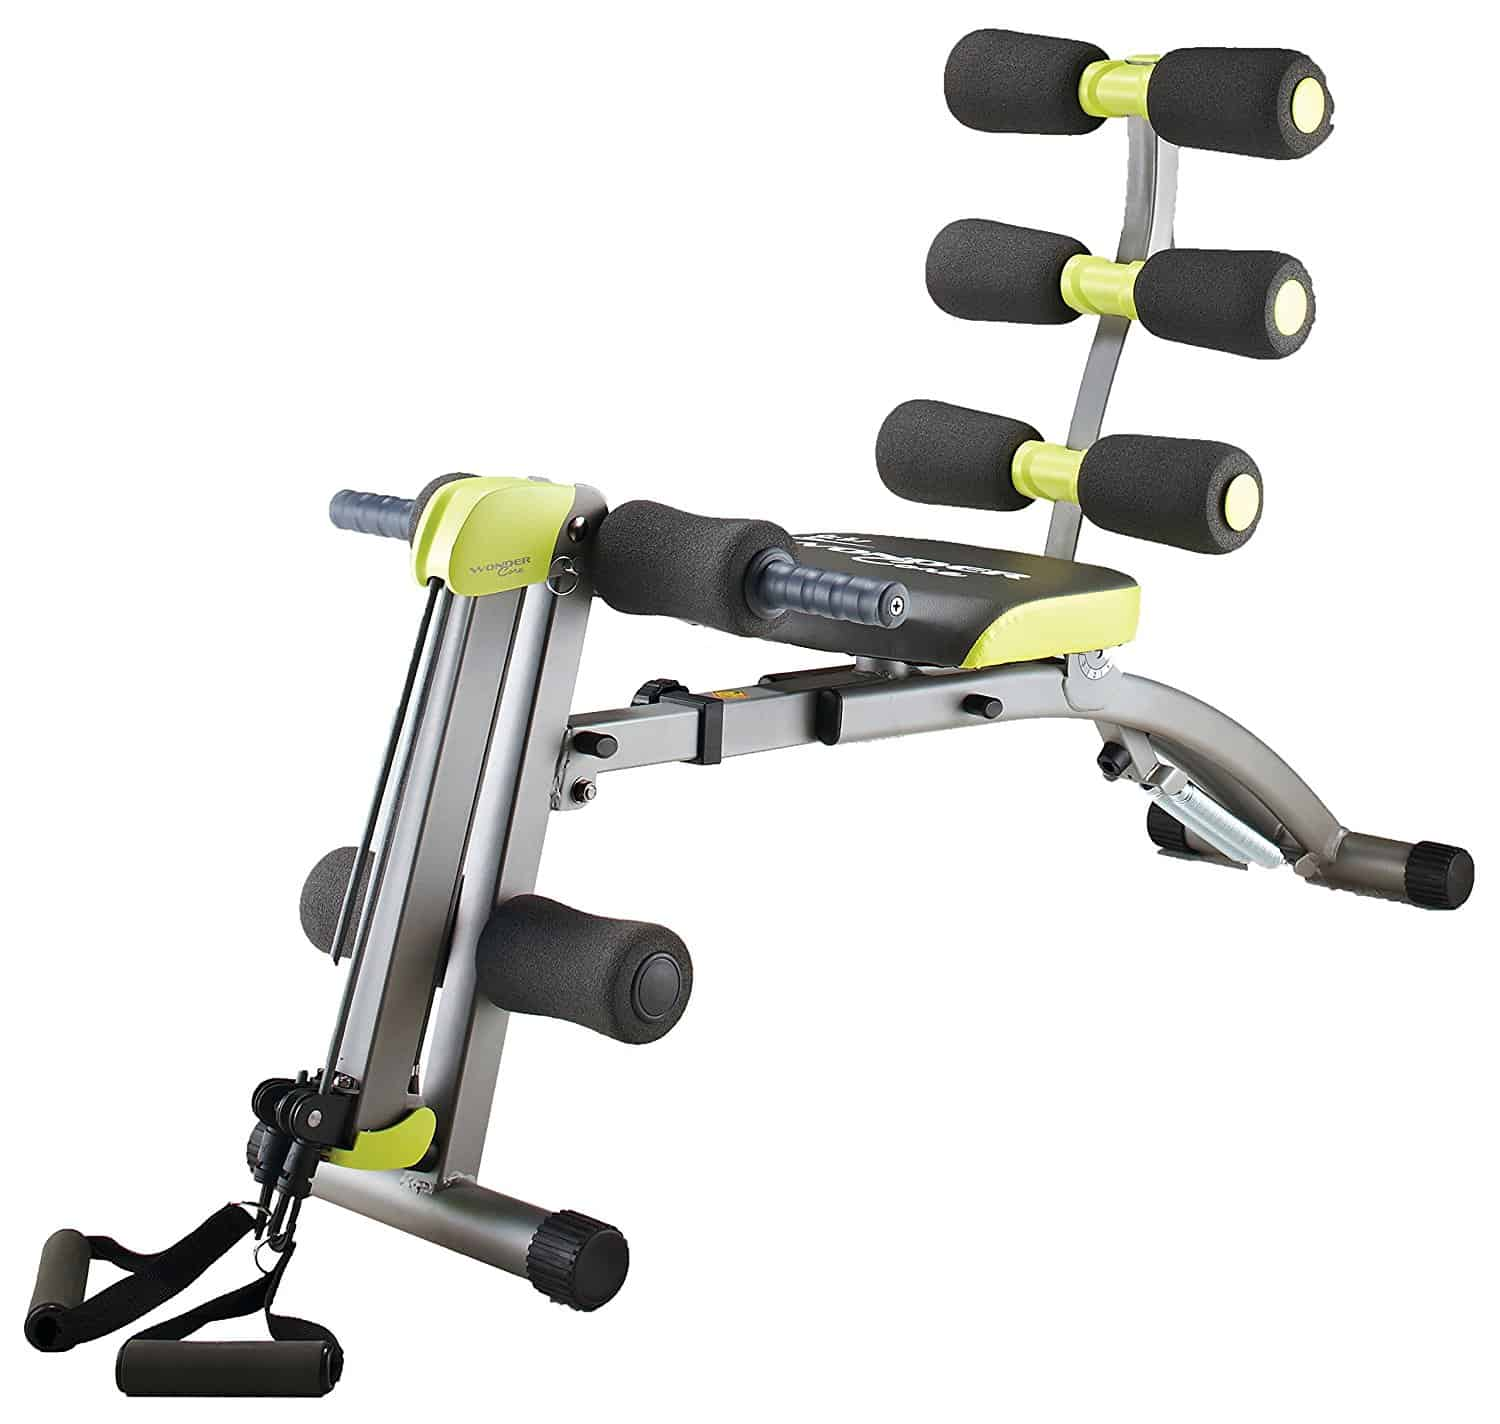 Fitness Equipment Yorkshire: Wonder Core 2 Review, Accessories And Alternatives